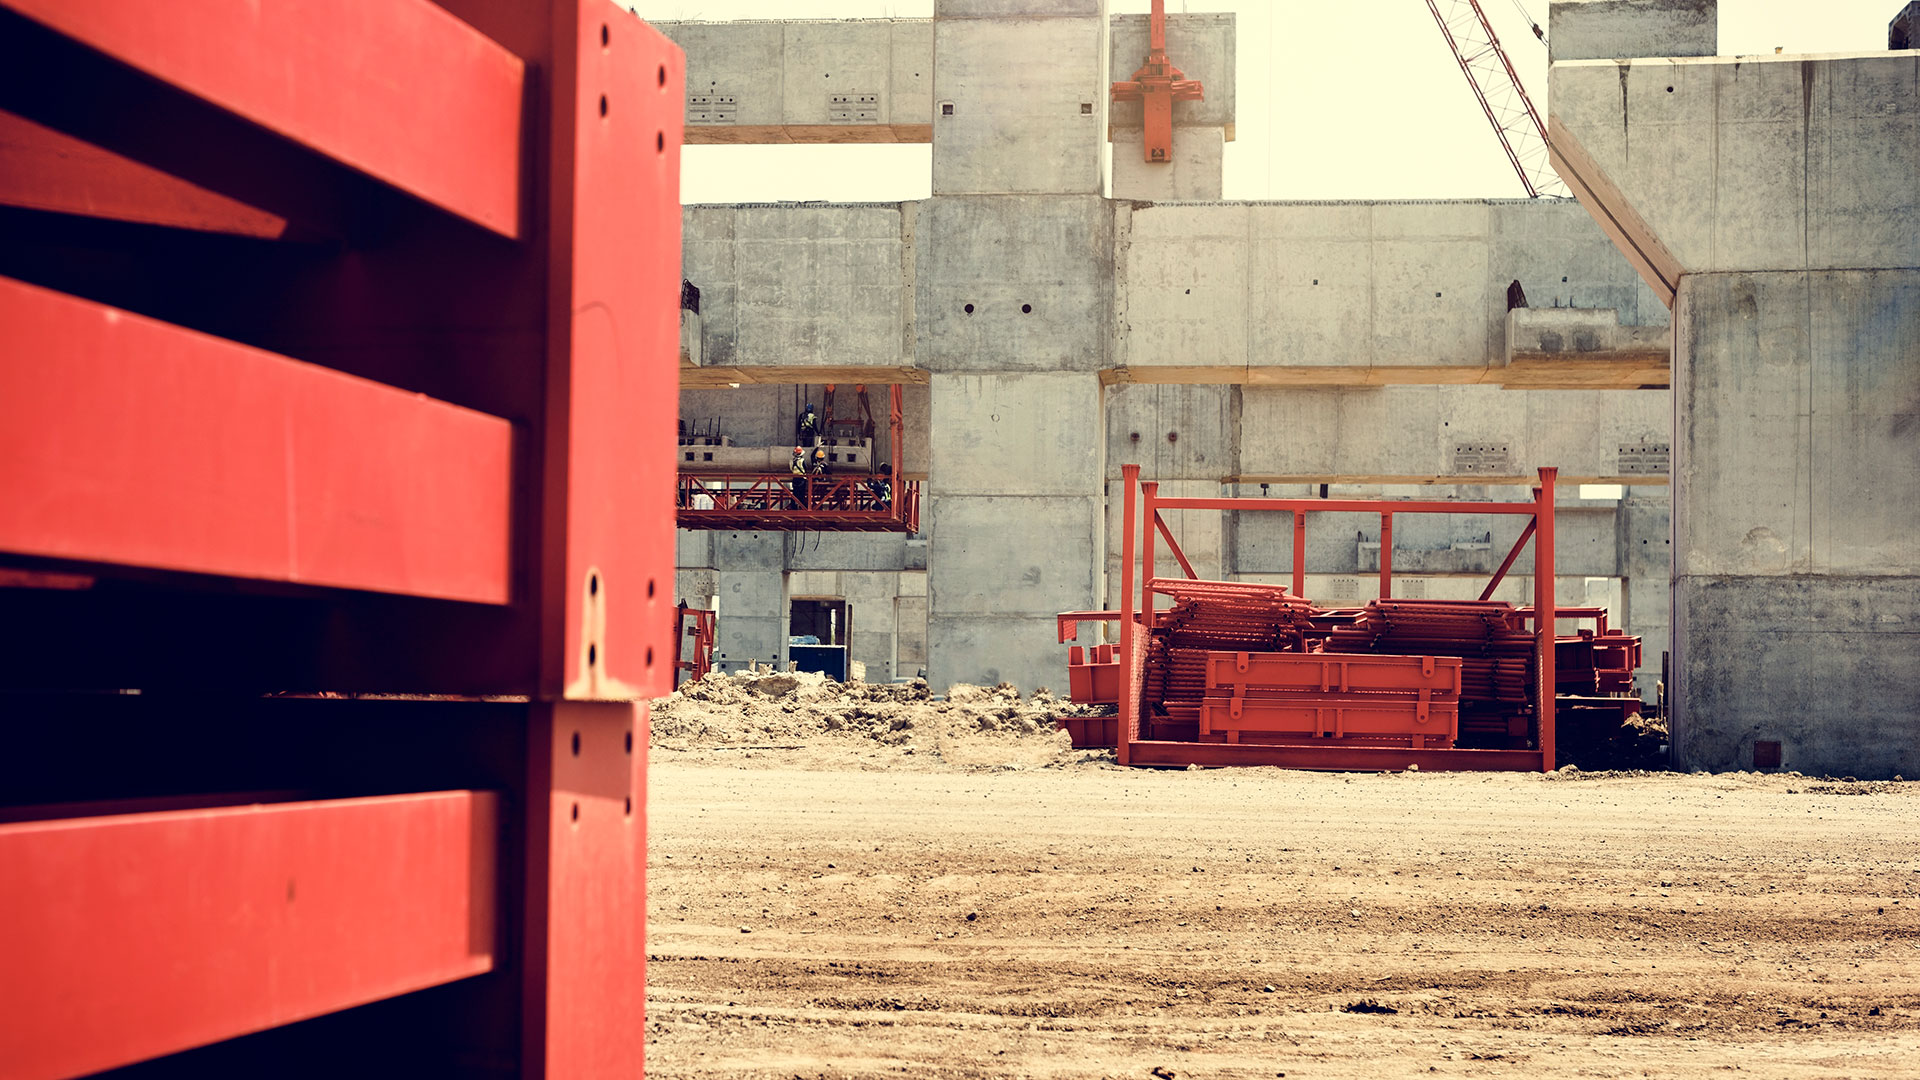 Architect Building Construction Engineer Safety Concept